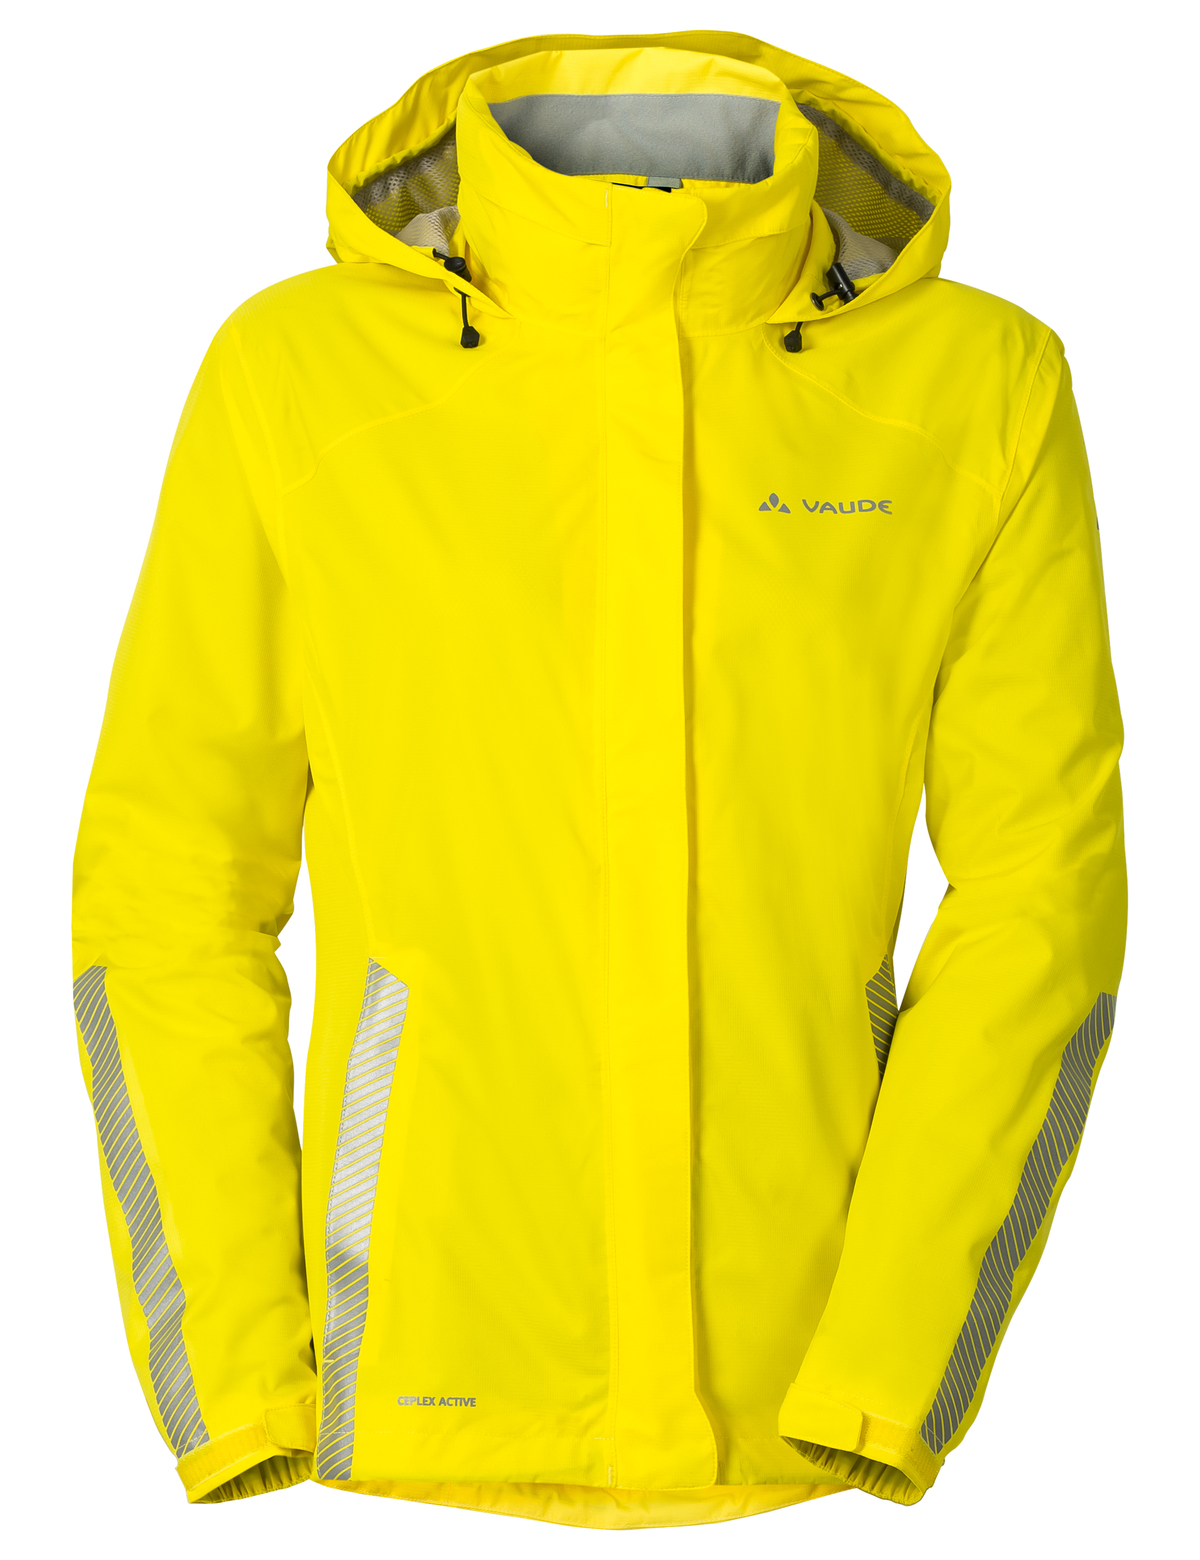 VAUDE Women´s Luminum Jacket canary Größe 42 - VAUDE Women´s Luminum Jacket canary Größe 42